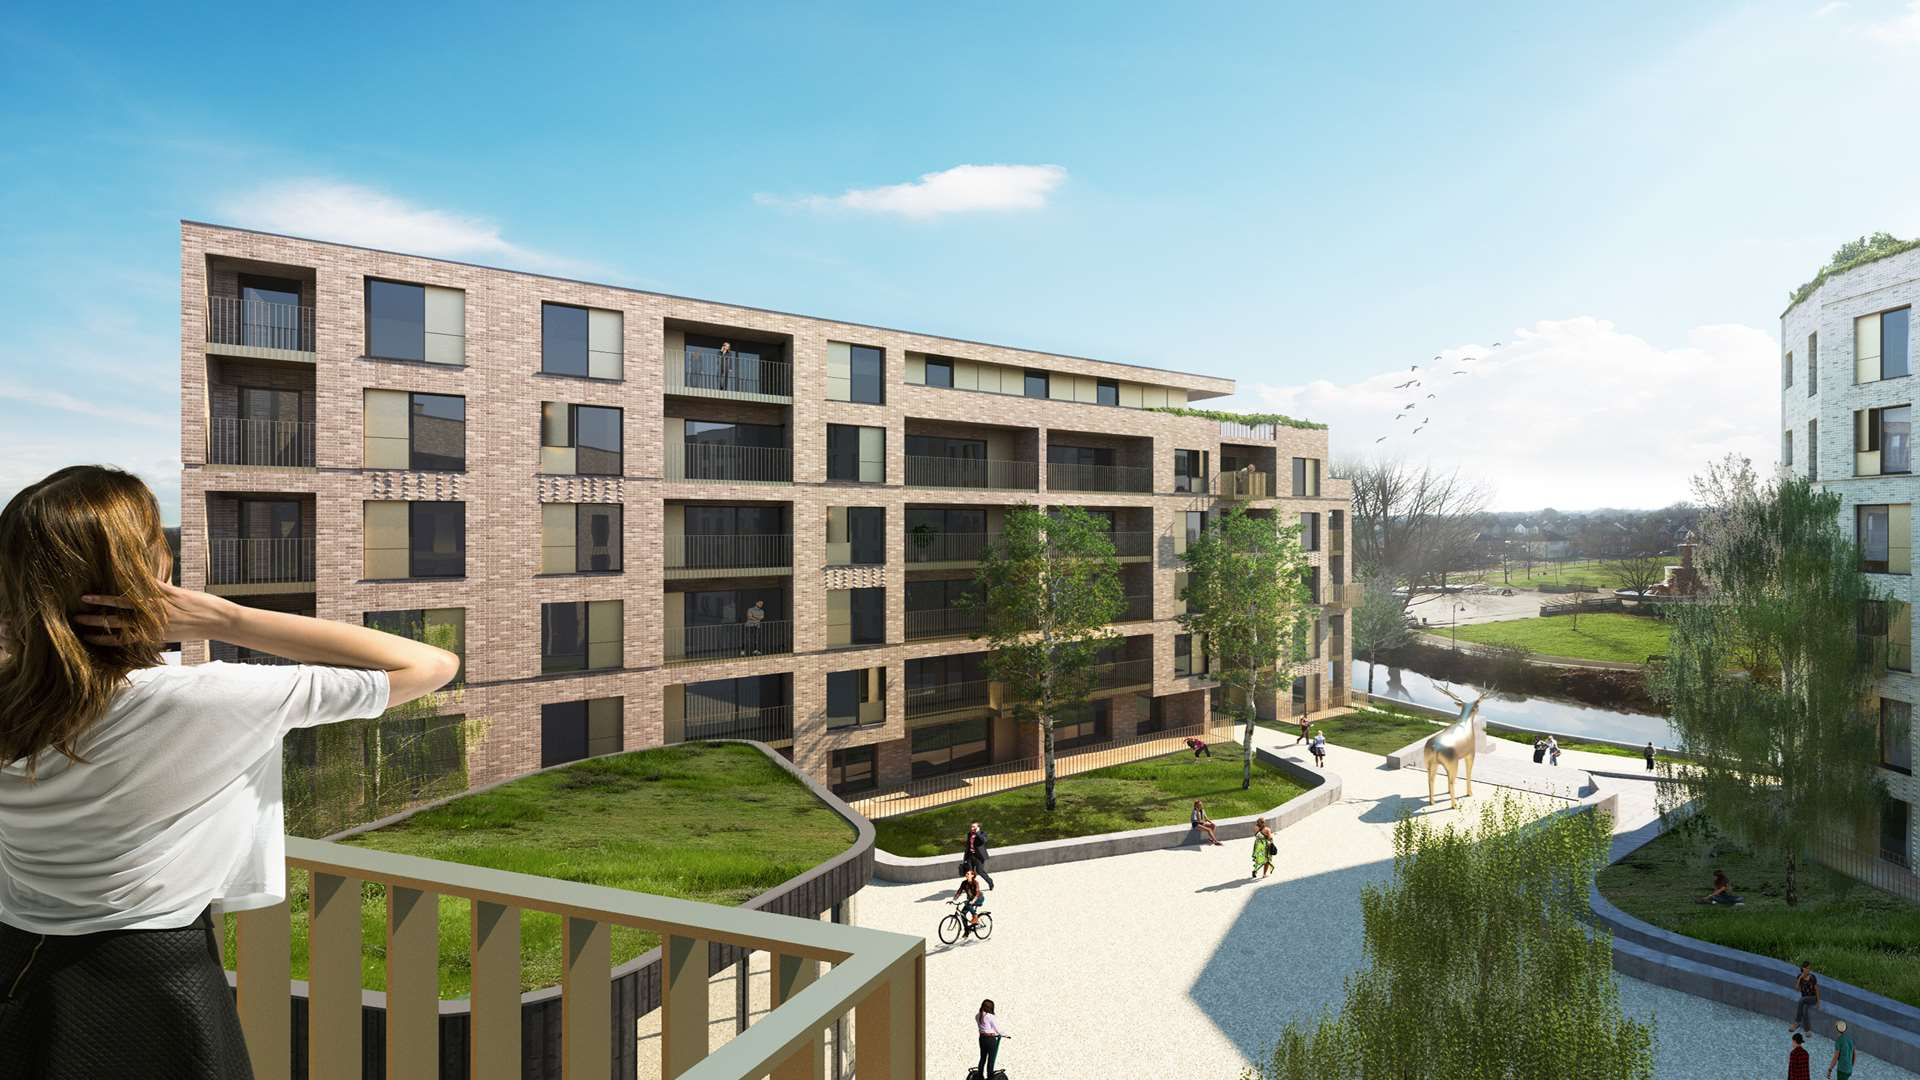 Apartments on old Powergen site in Ashford approved